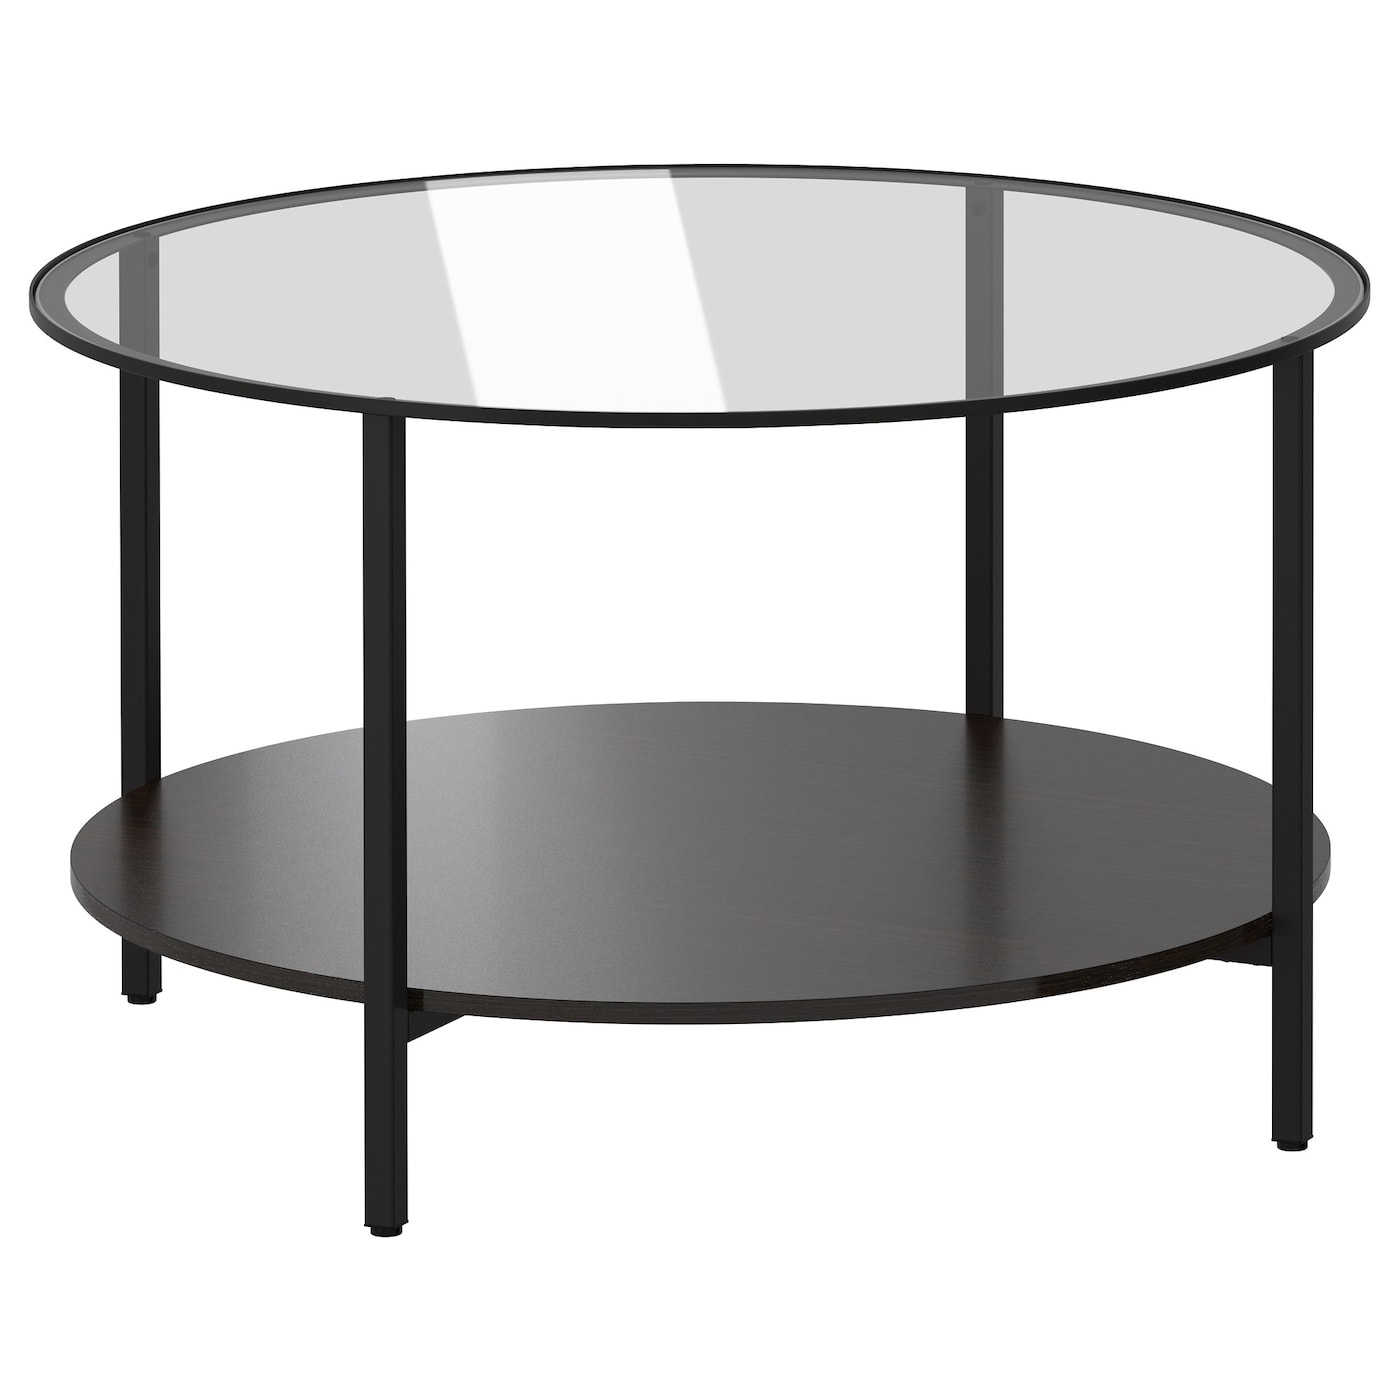 vittsj coffee table black brown glass 75 cm ikea rh ikea com vittsjo coffee table white vittsjoe coffee table white